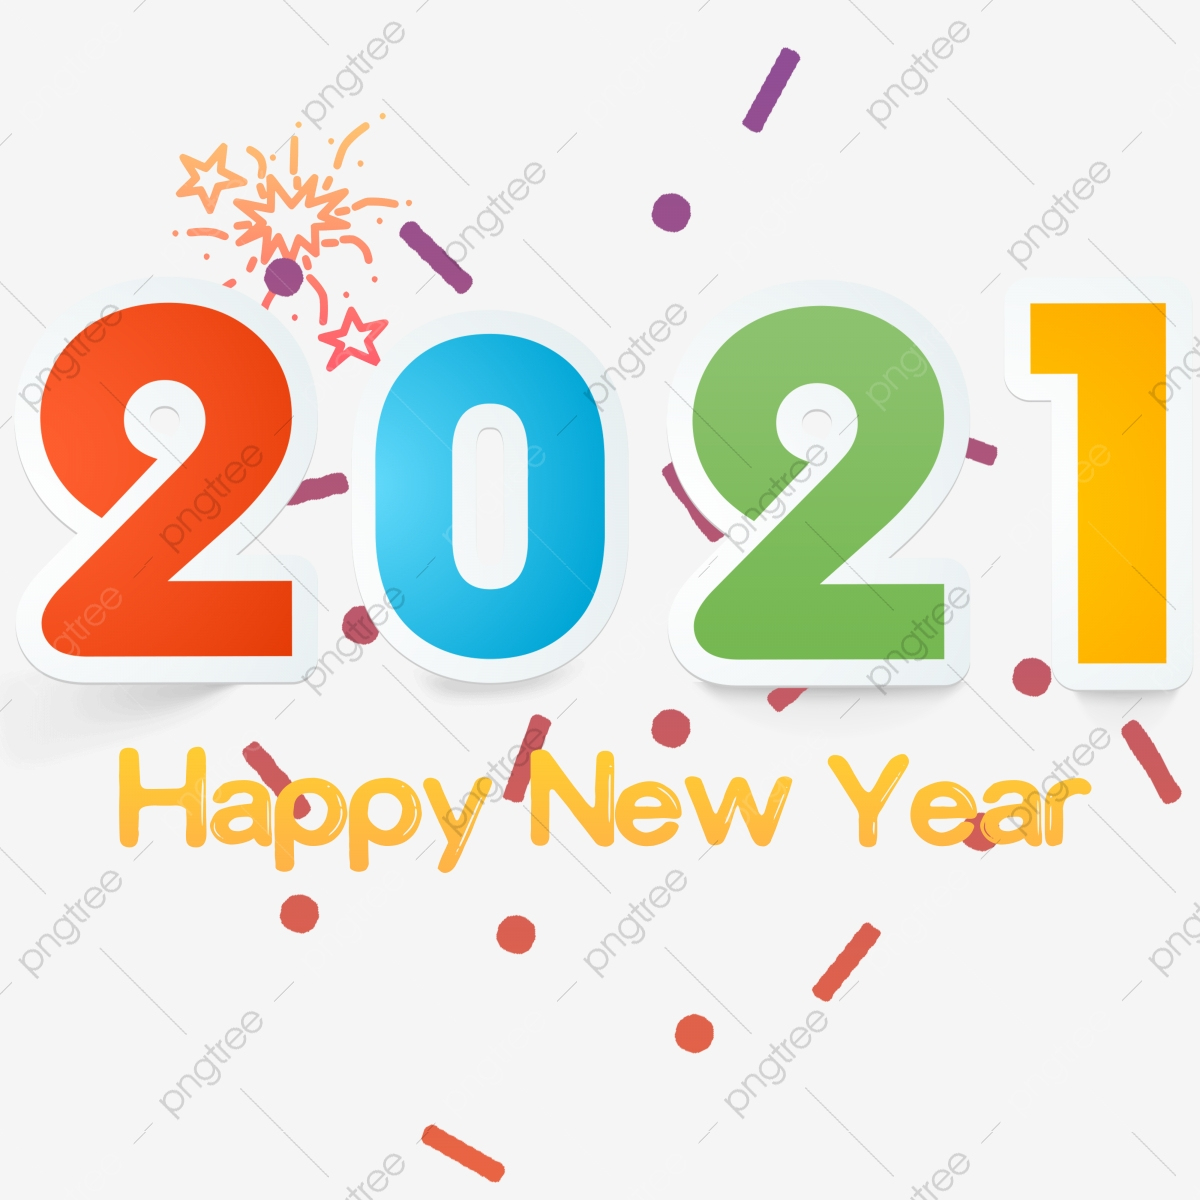 happy new year 2021 2021 2021 new year png transparent clipart image and psd file for free download https pngtree com freepng happy new year 2021 5444364 html